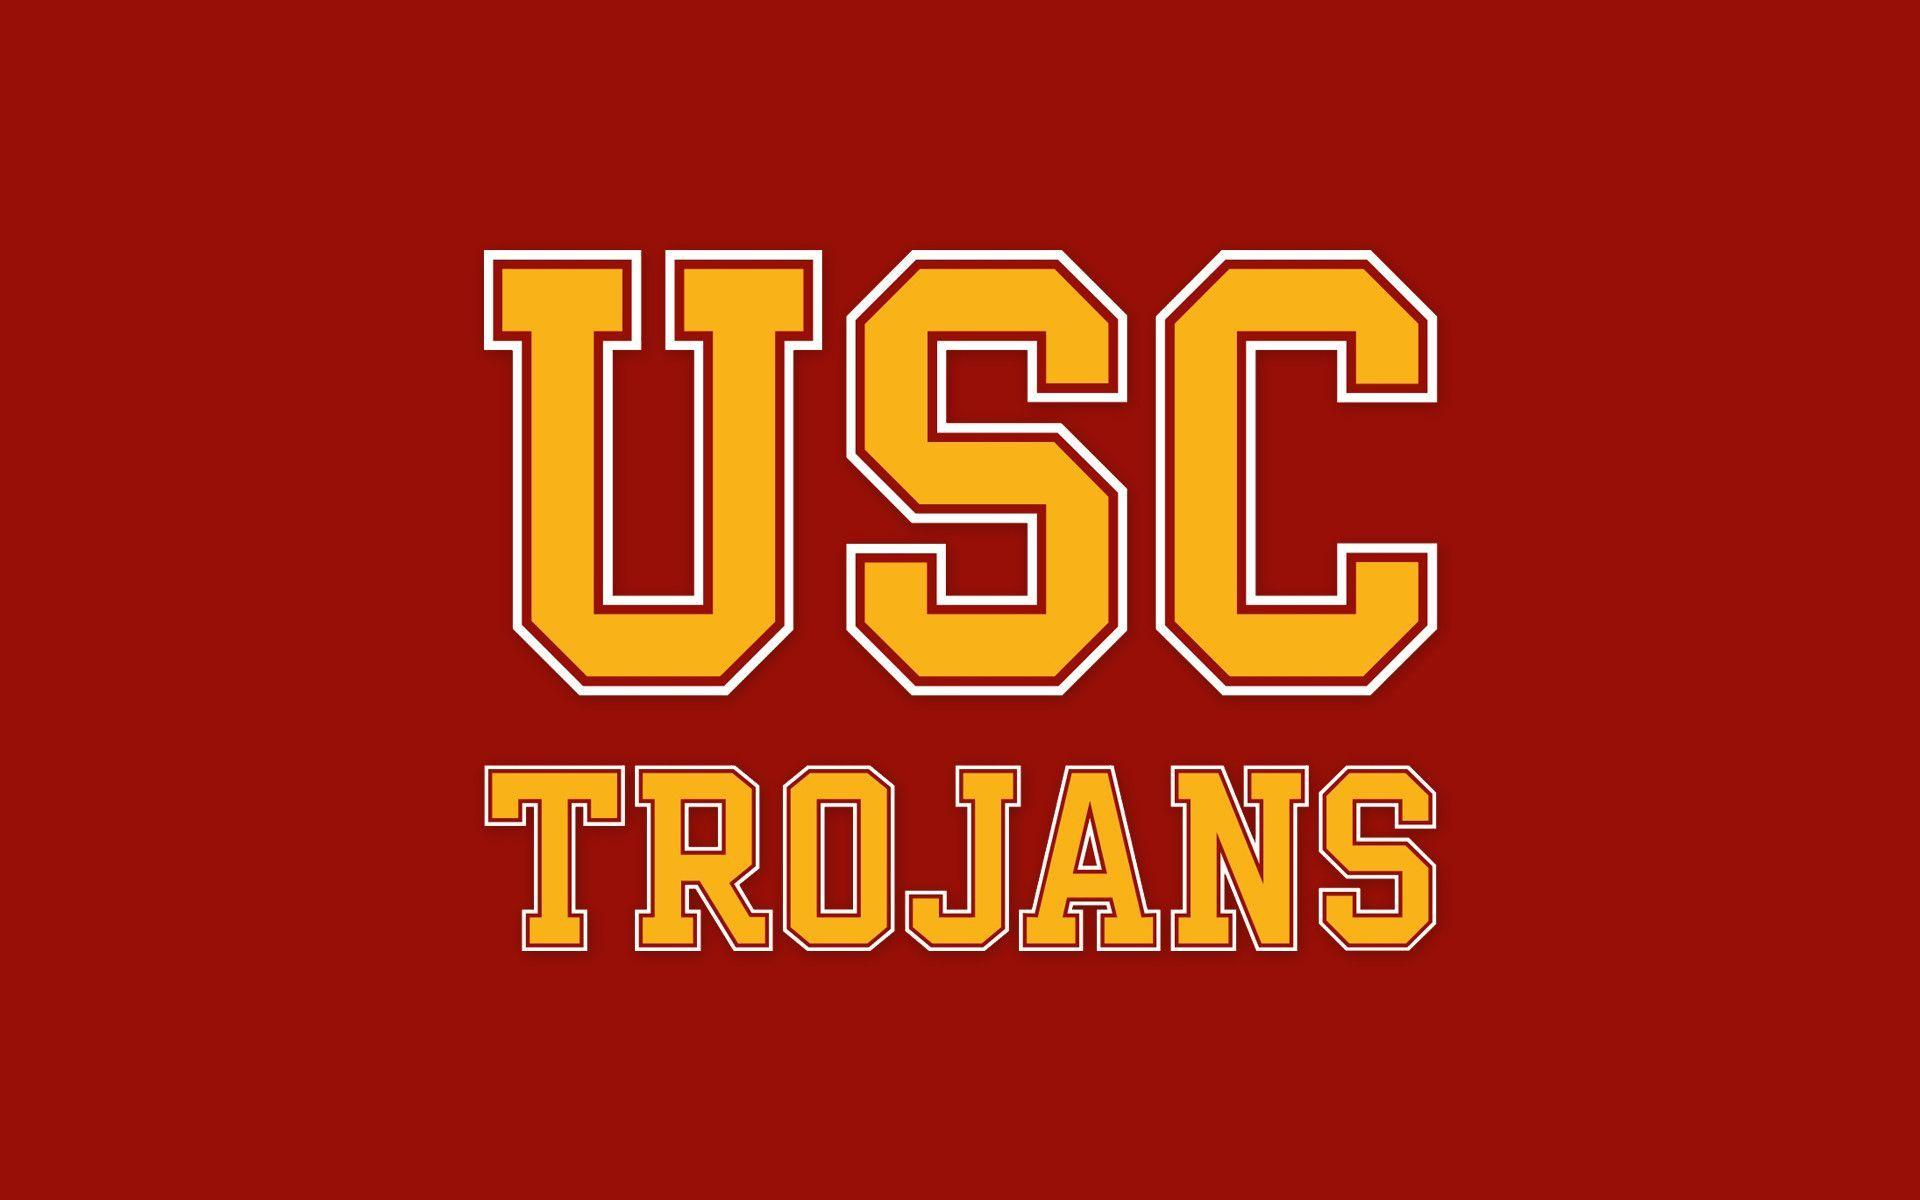 Awesome Usc Trojans Wallpaper 1920x1200PX 186558